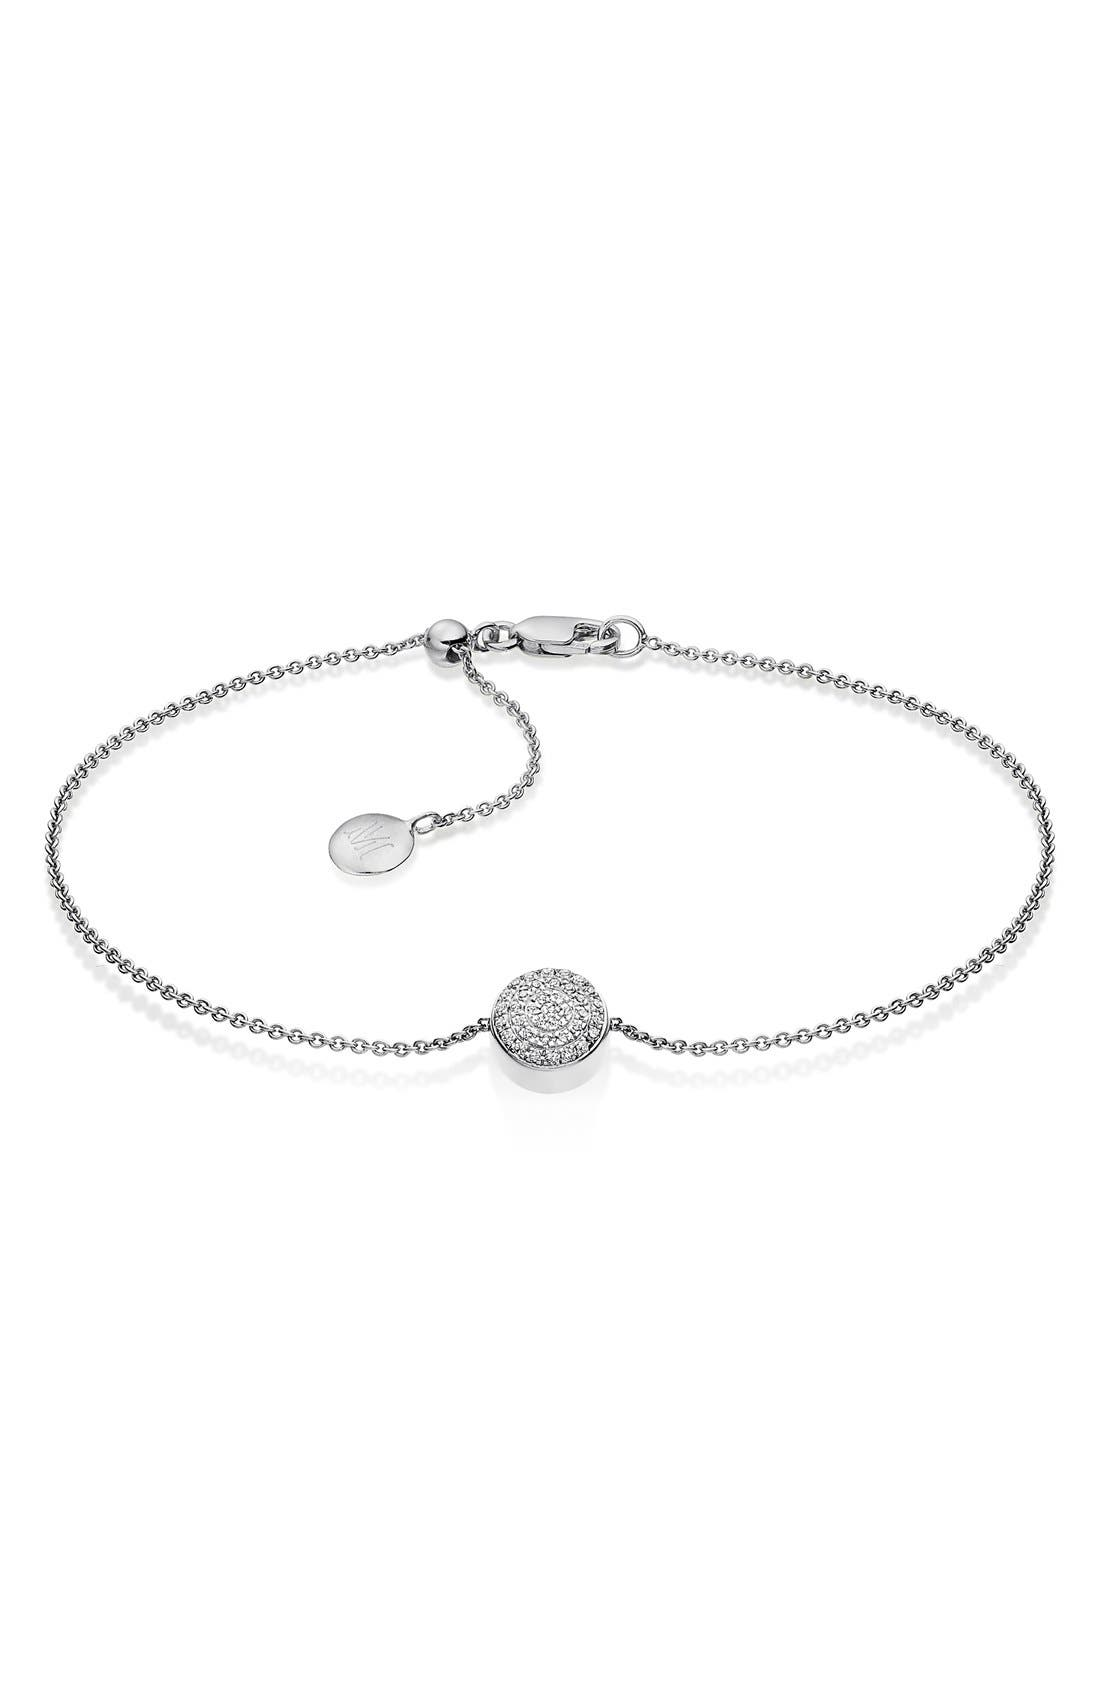 Main Image - Monica Vinader 'Ava' Diamond Button Bracelet